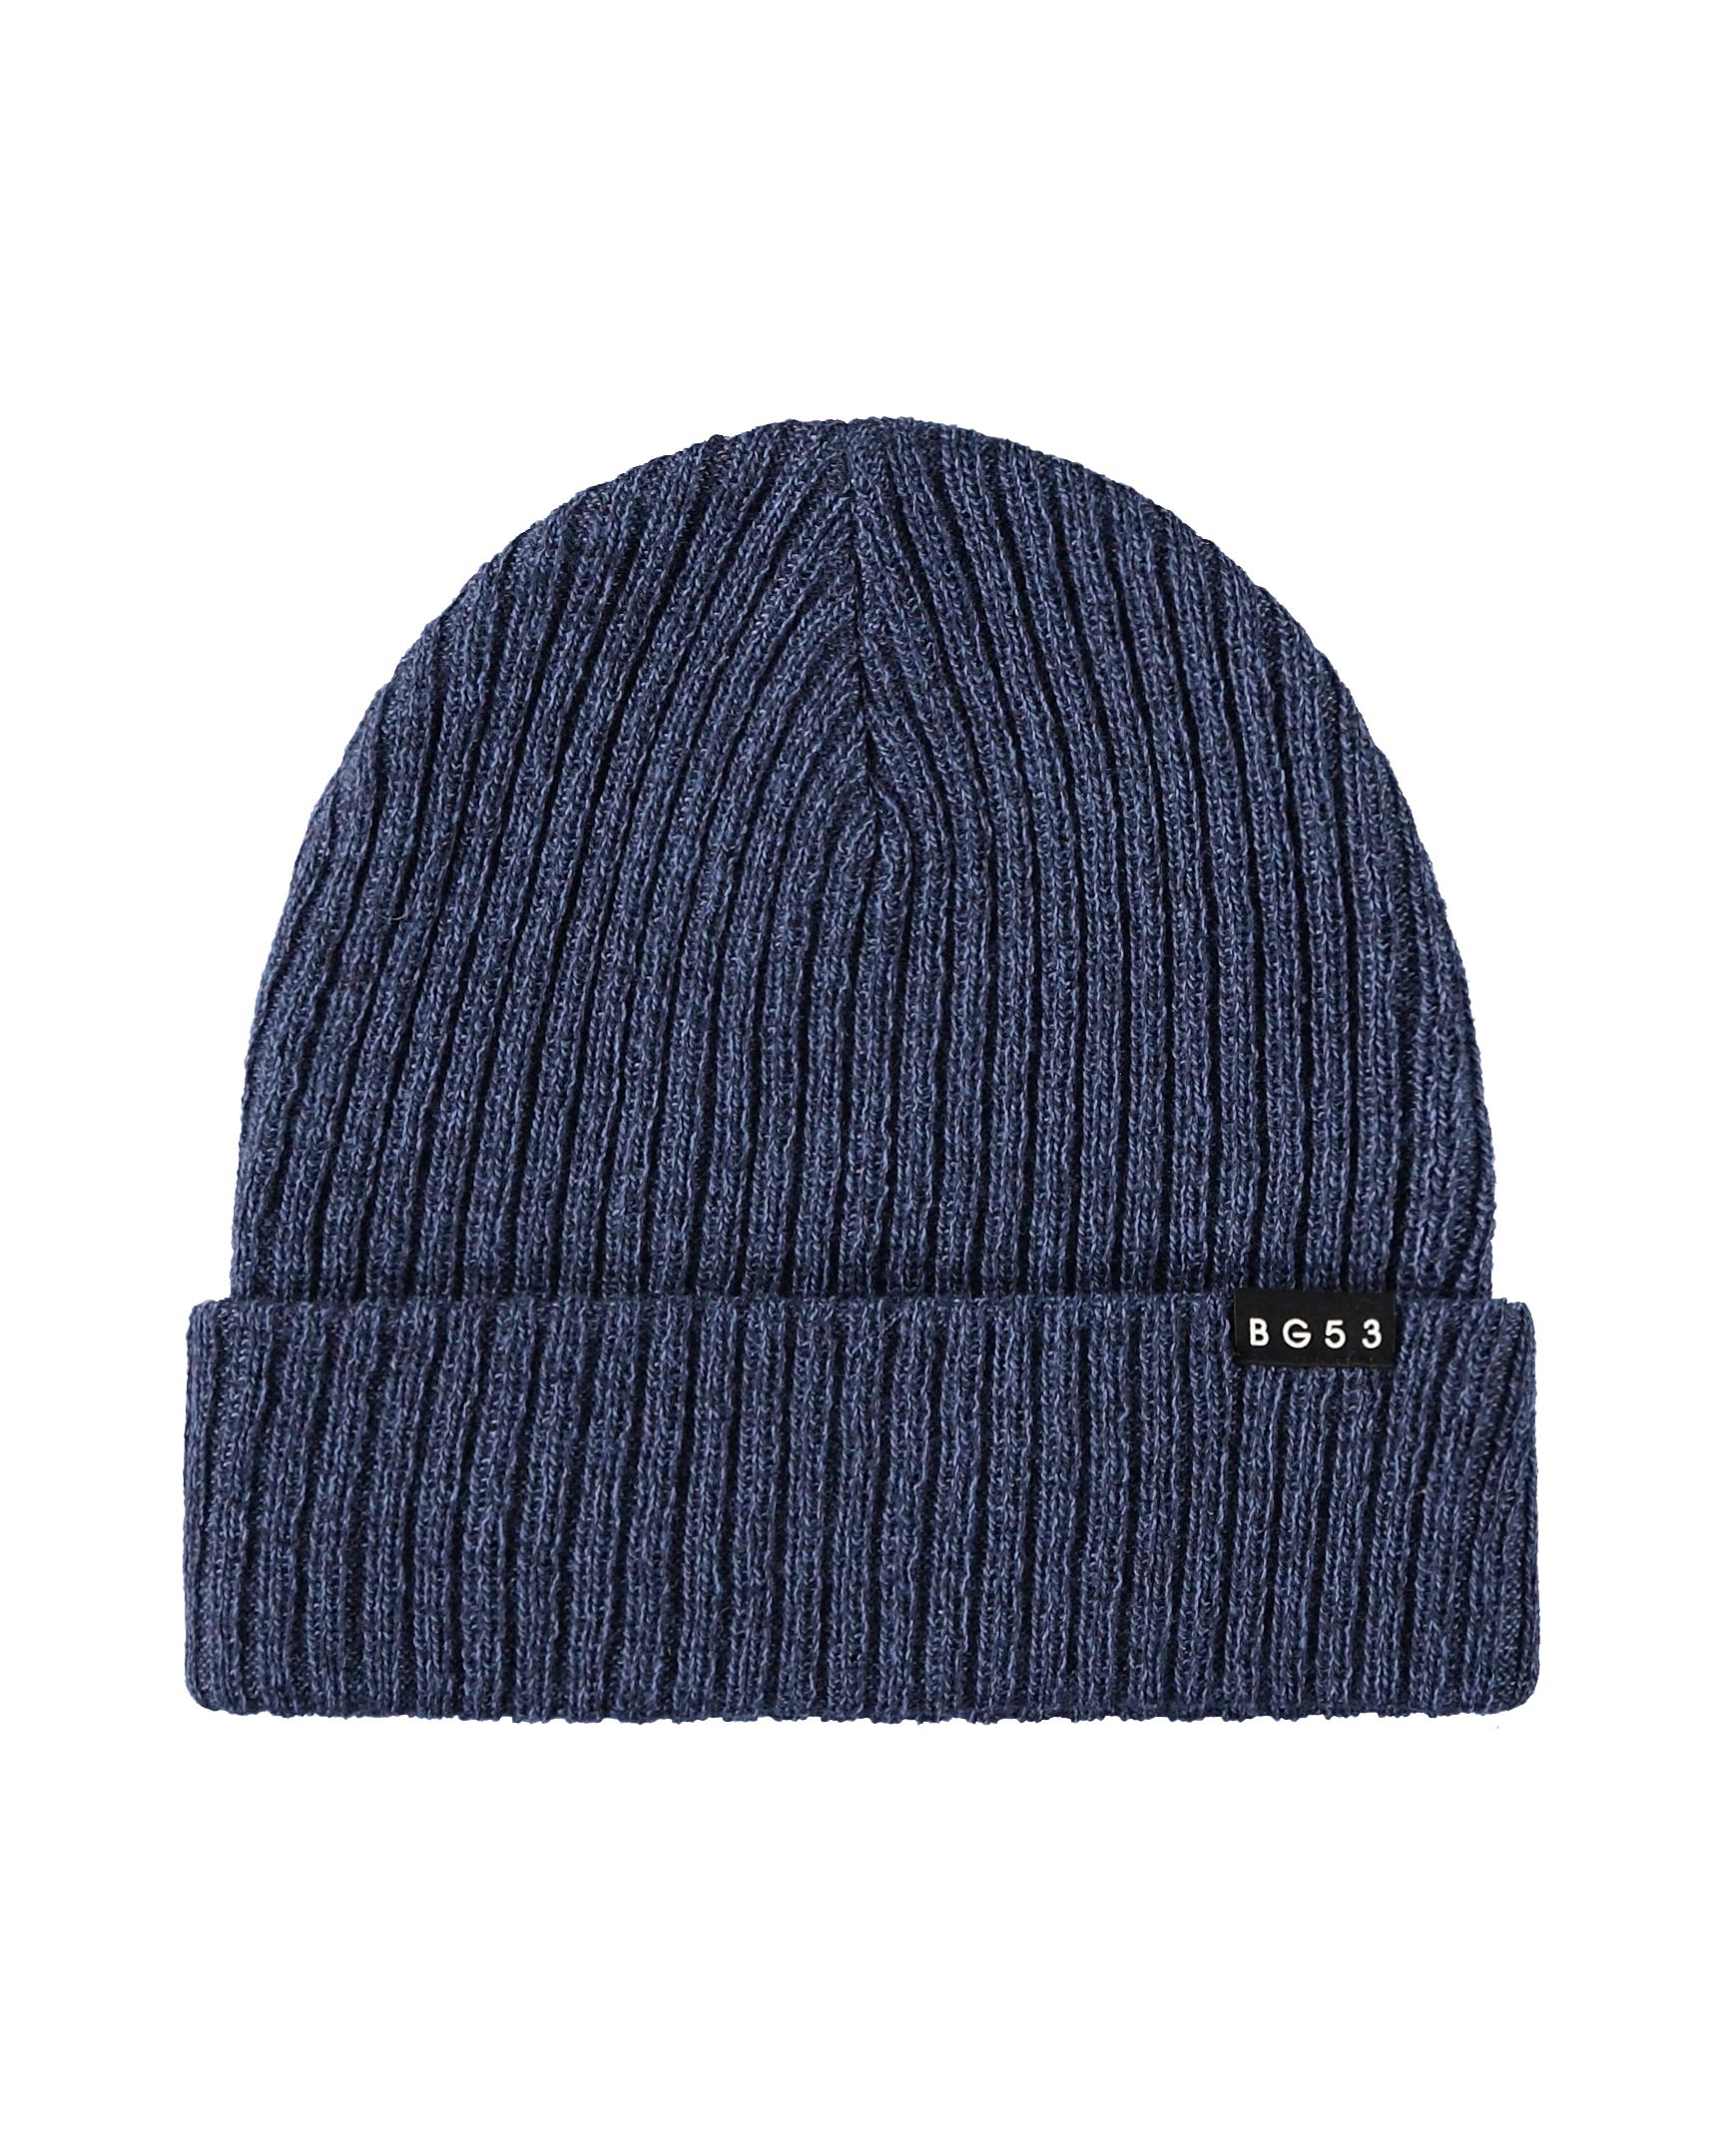 Unisex Knit Beanie with BG53 Rubber Logo - Navy